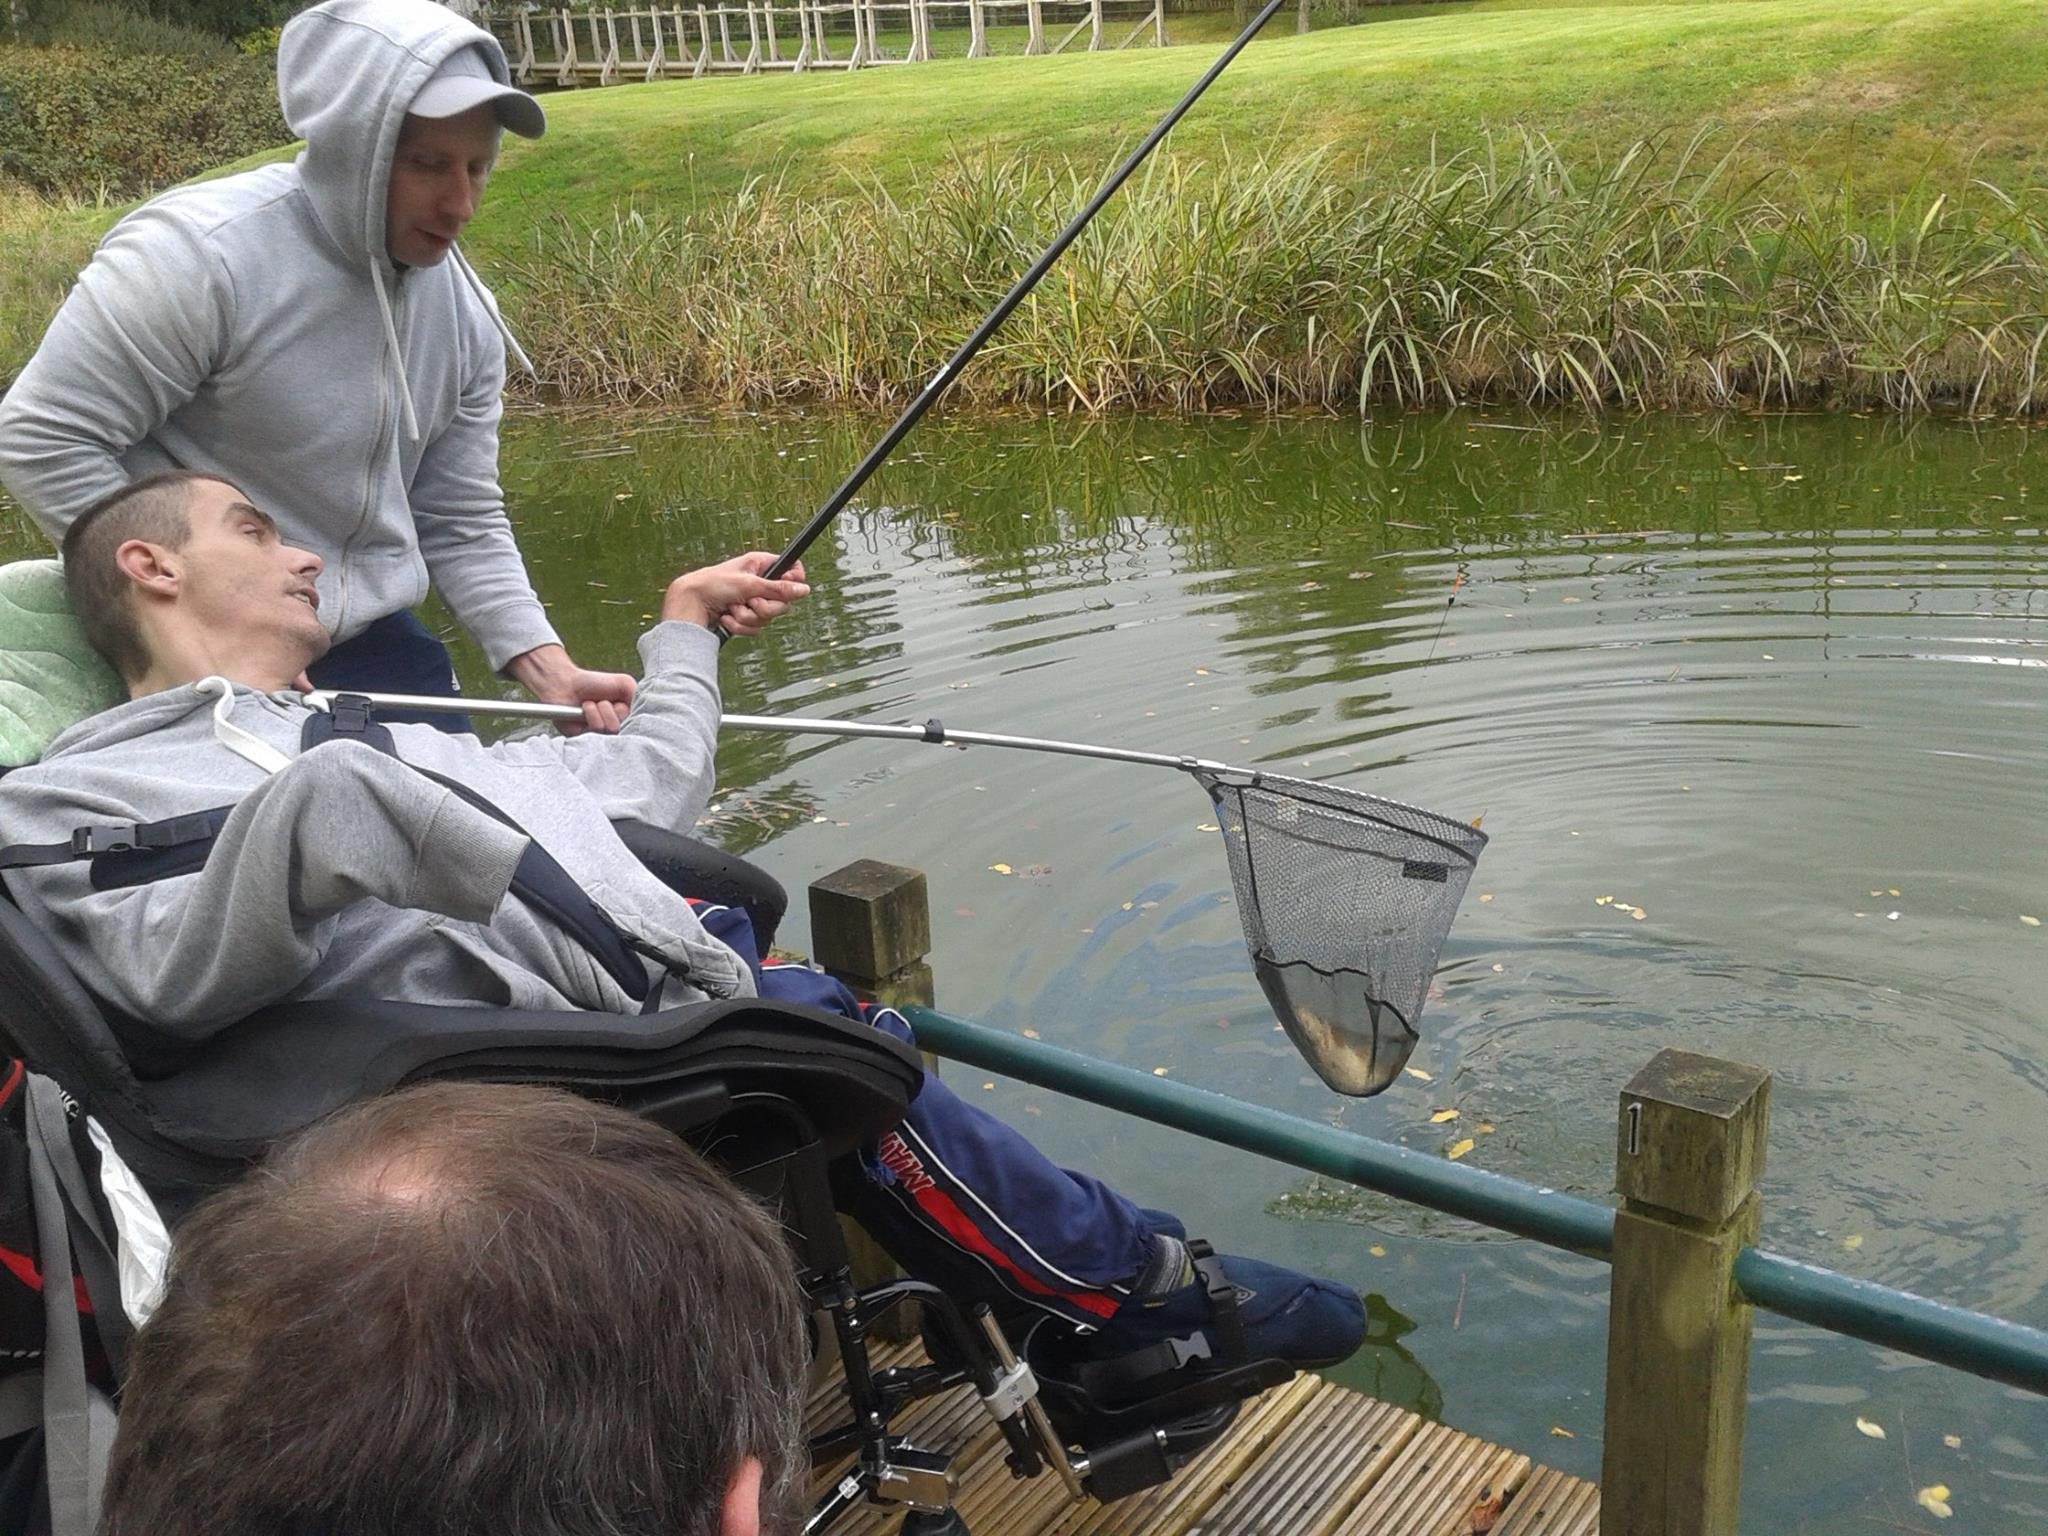 Adaptive angling equipment